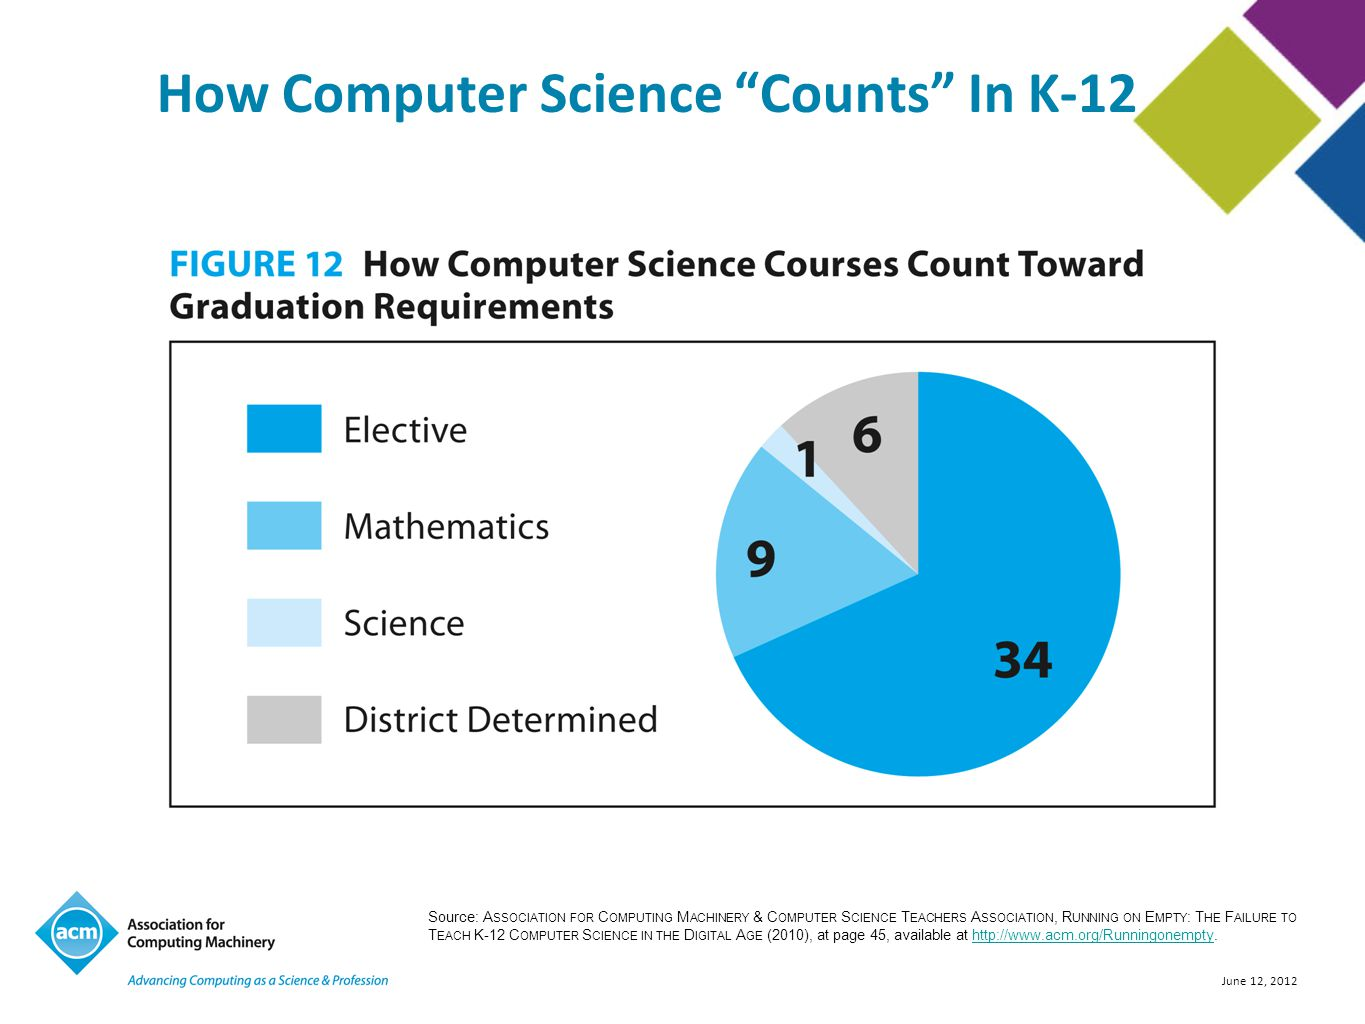 June 12, 2012 How Computer Science Counts In K-12 Source: A SSOCIATION FOR C OMPUTING M ACHINERY & C OMPUTER S CIENCE T EACHERS A SSOCIATION, R UNNING ON E MPTY : T HE F AILURE TO T EACH K-12 C OMPUTER S CIENCE IN THE D IGITAL A GE (2010), at page 45, available at http://www.acm.org/Runningonempty.http://www.acm.org/Runningonempty